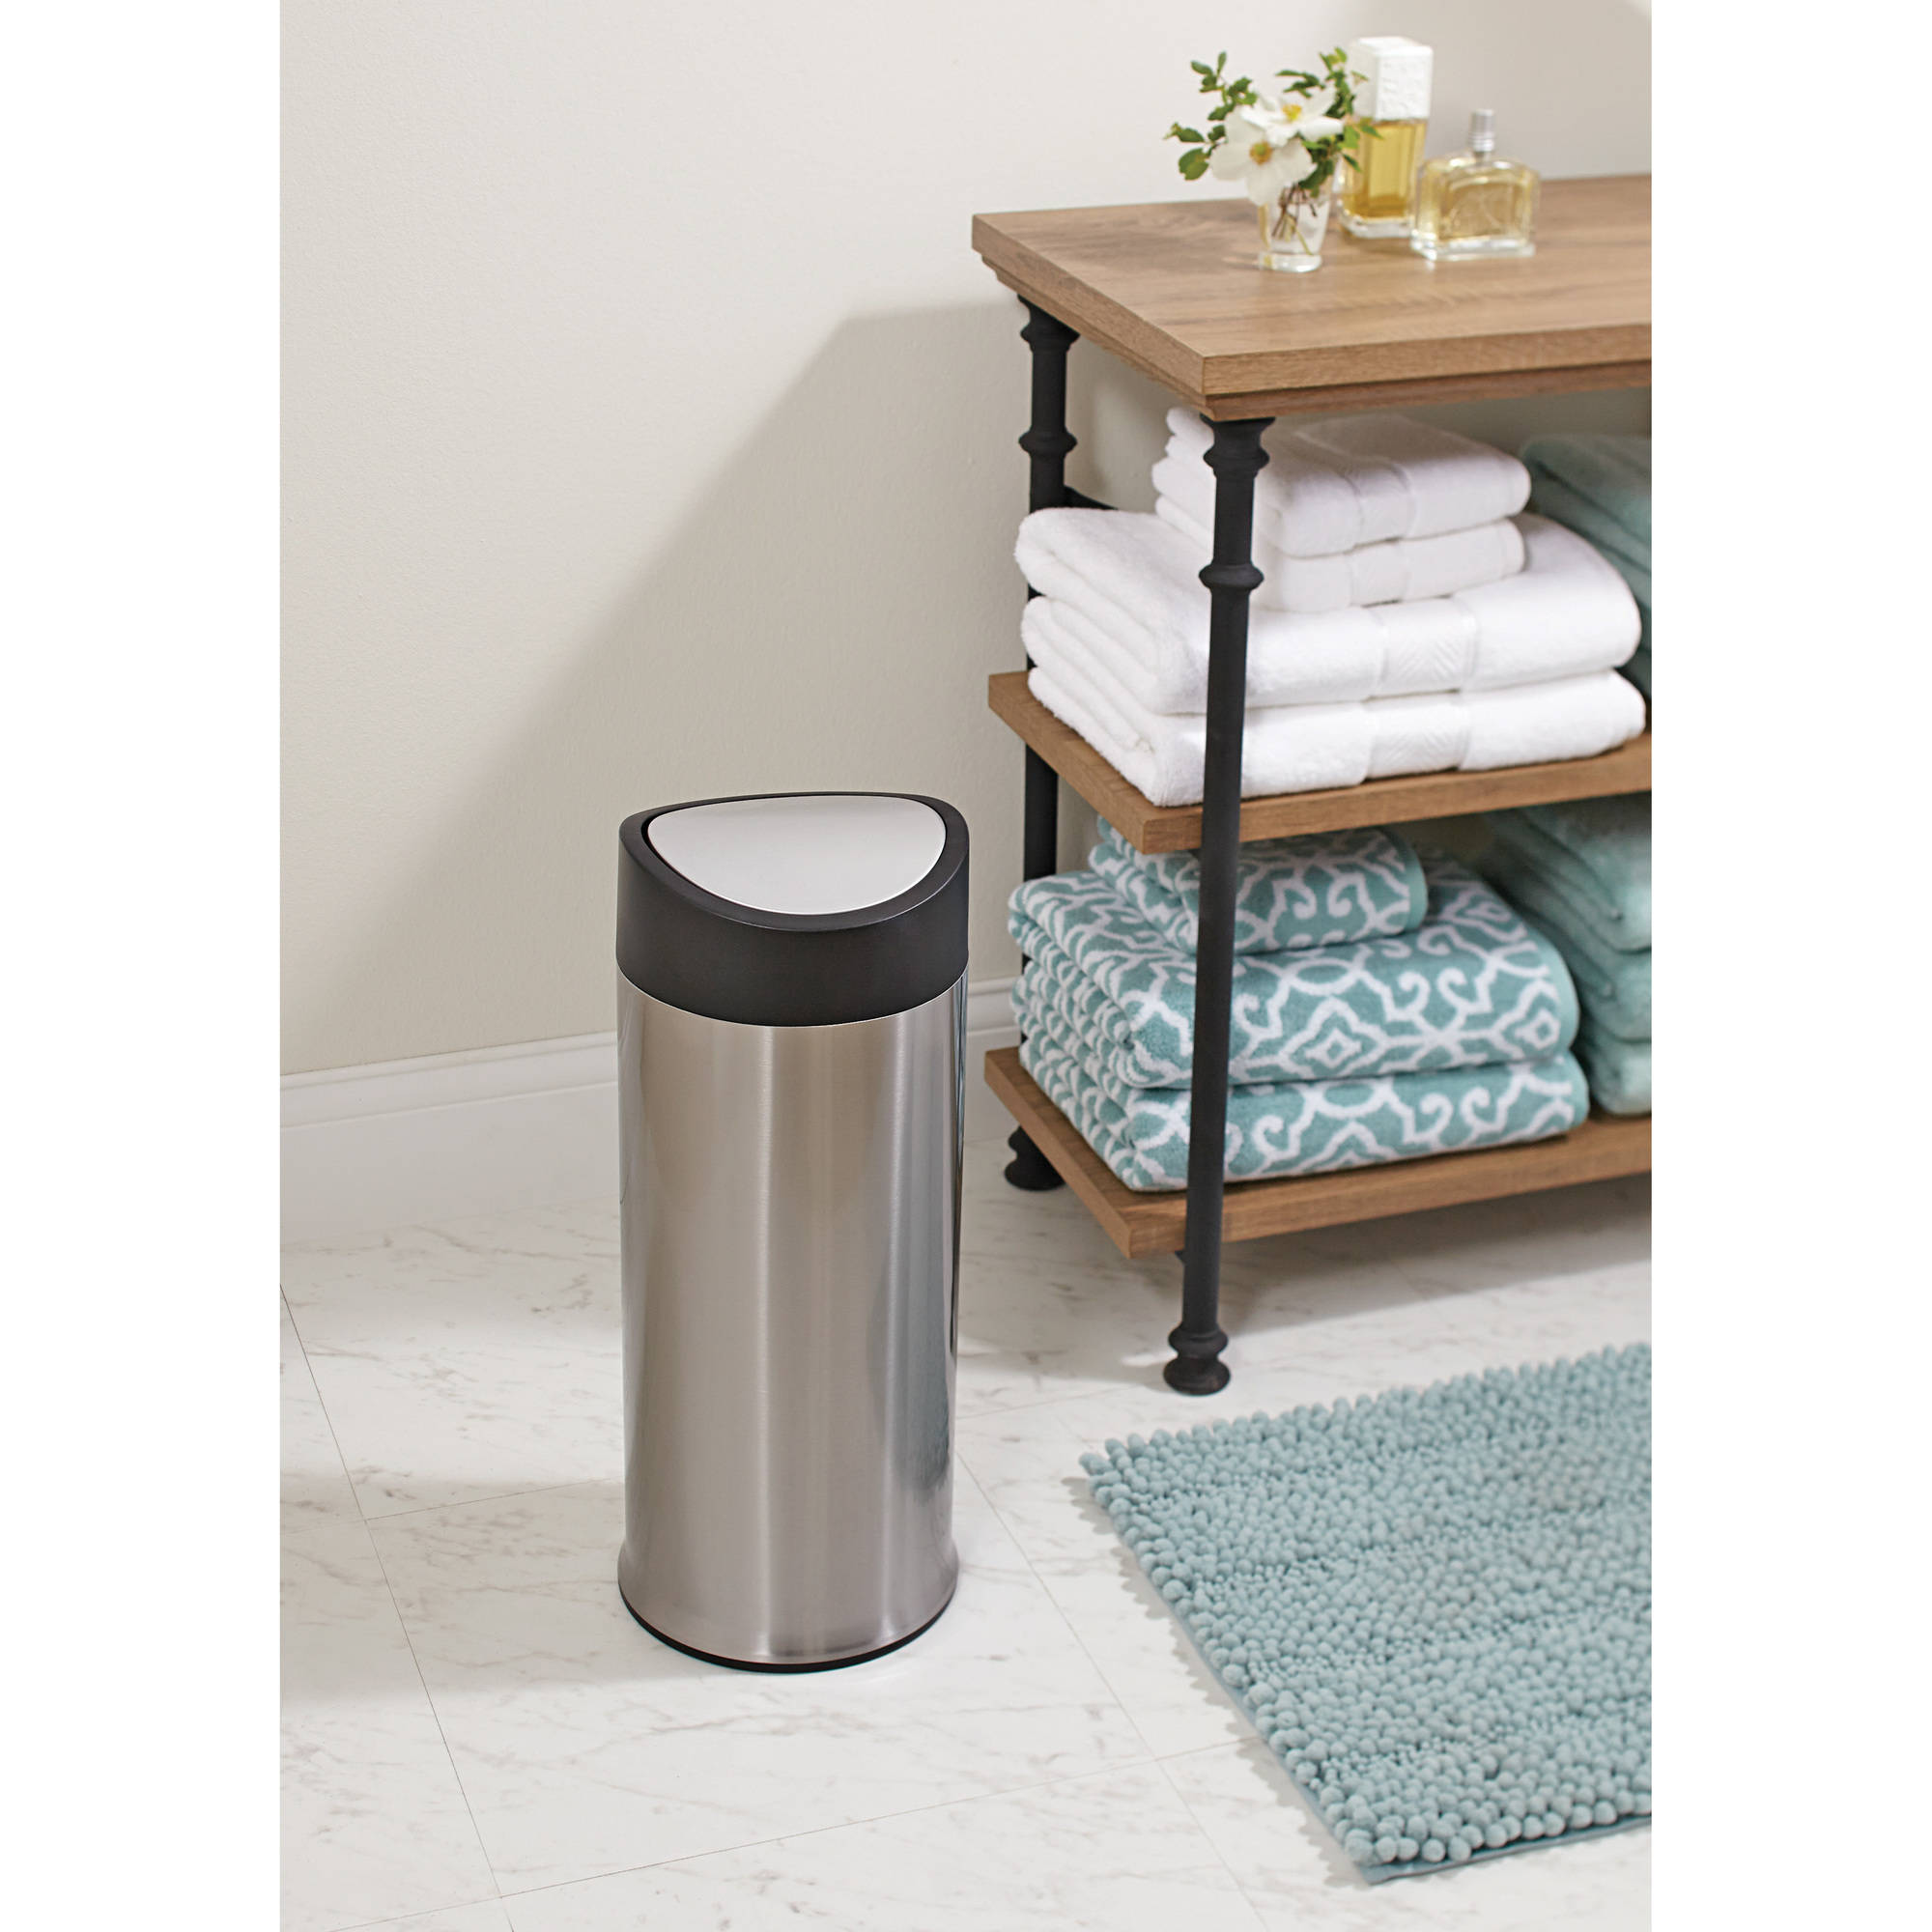 Better Homes and Gardens Stainless Steel 12L Round Slide On Swing Top Trash Can